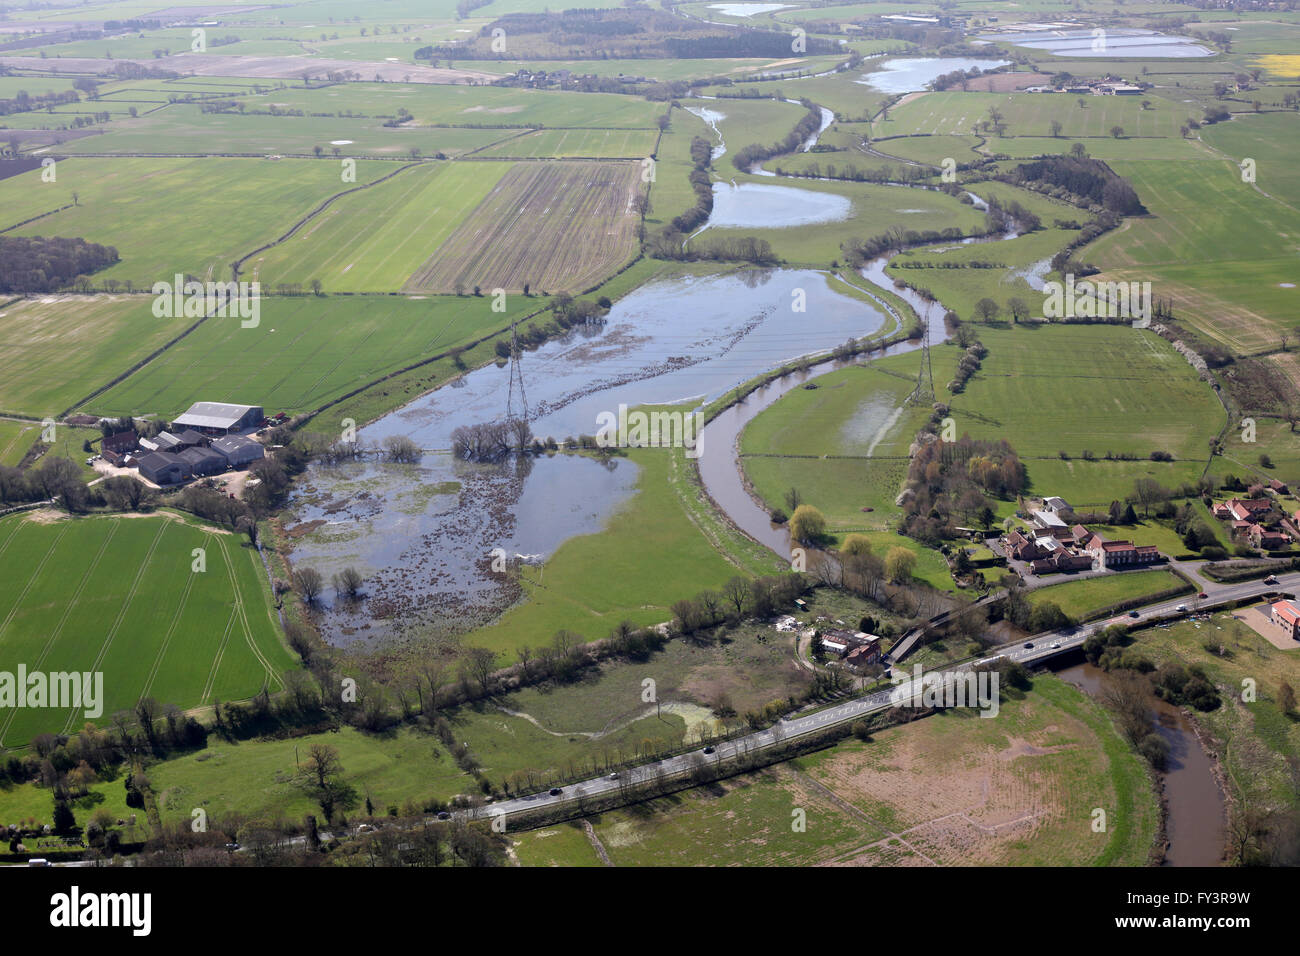 aerial view of flooding on the River Derwent in Yorkshire, UK - Stock Image